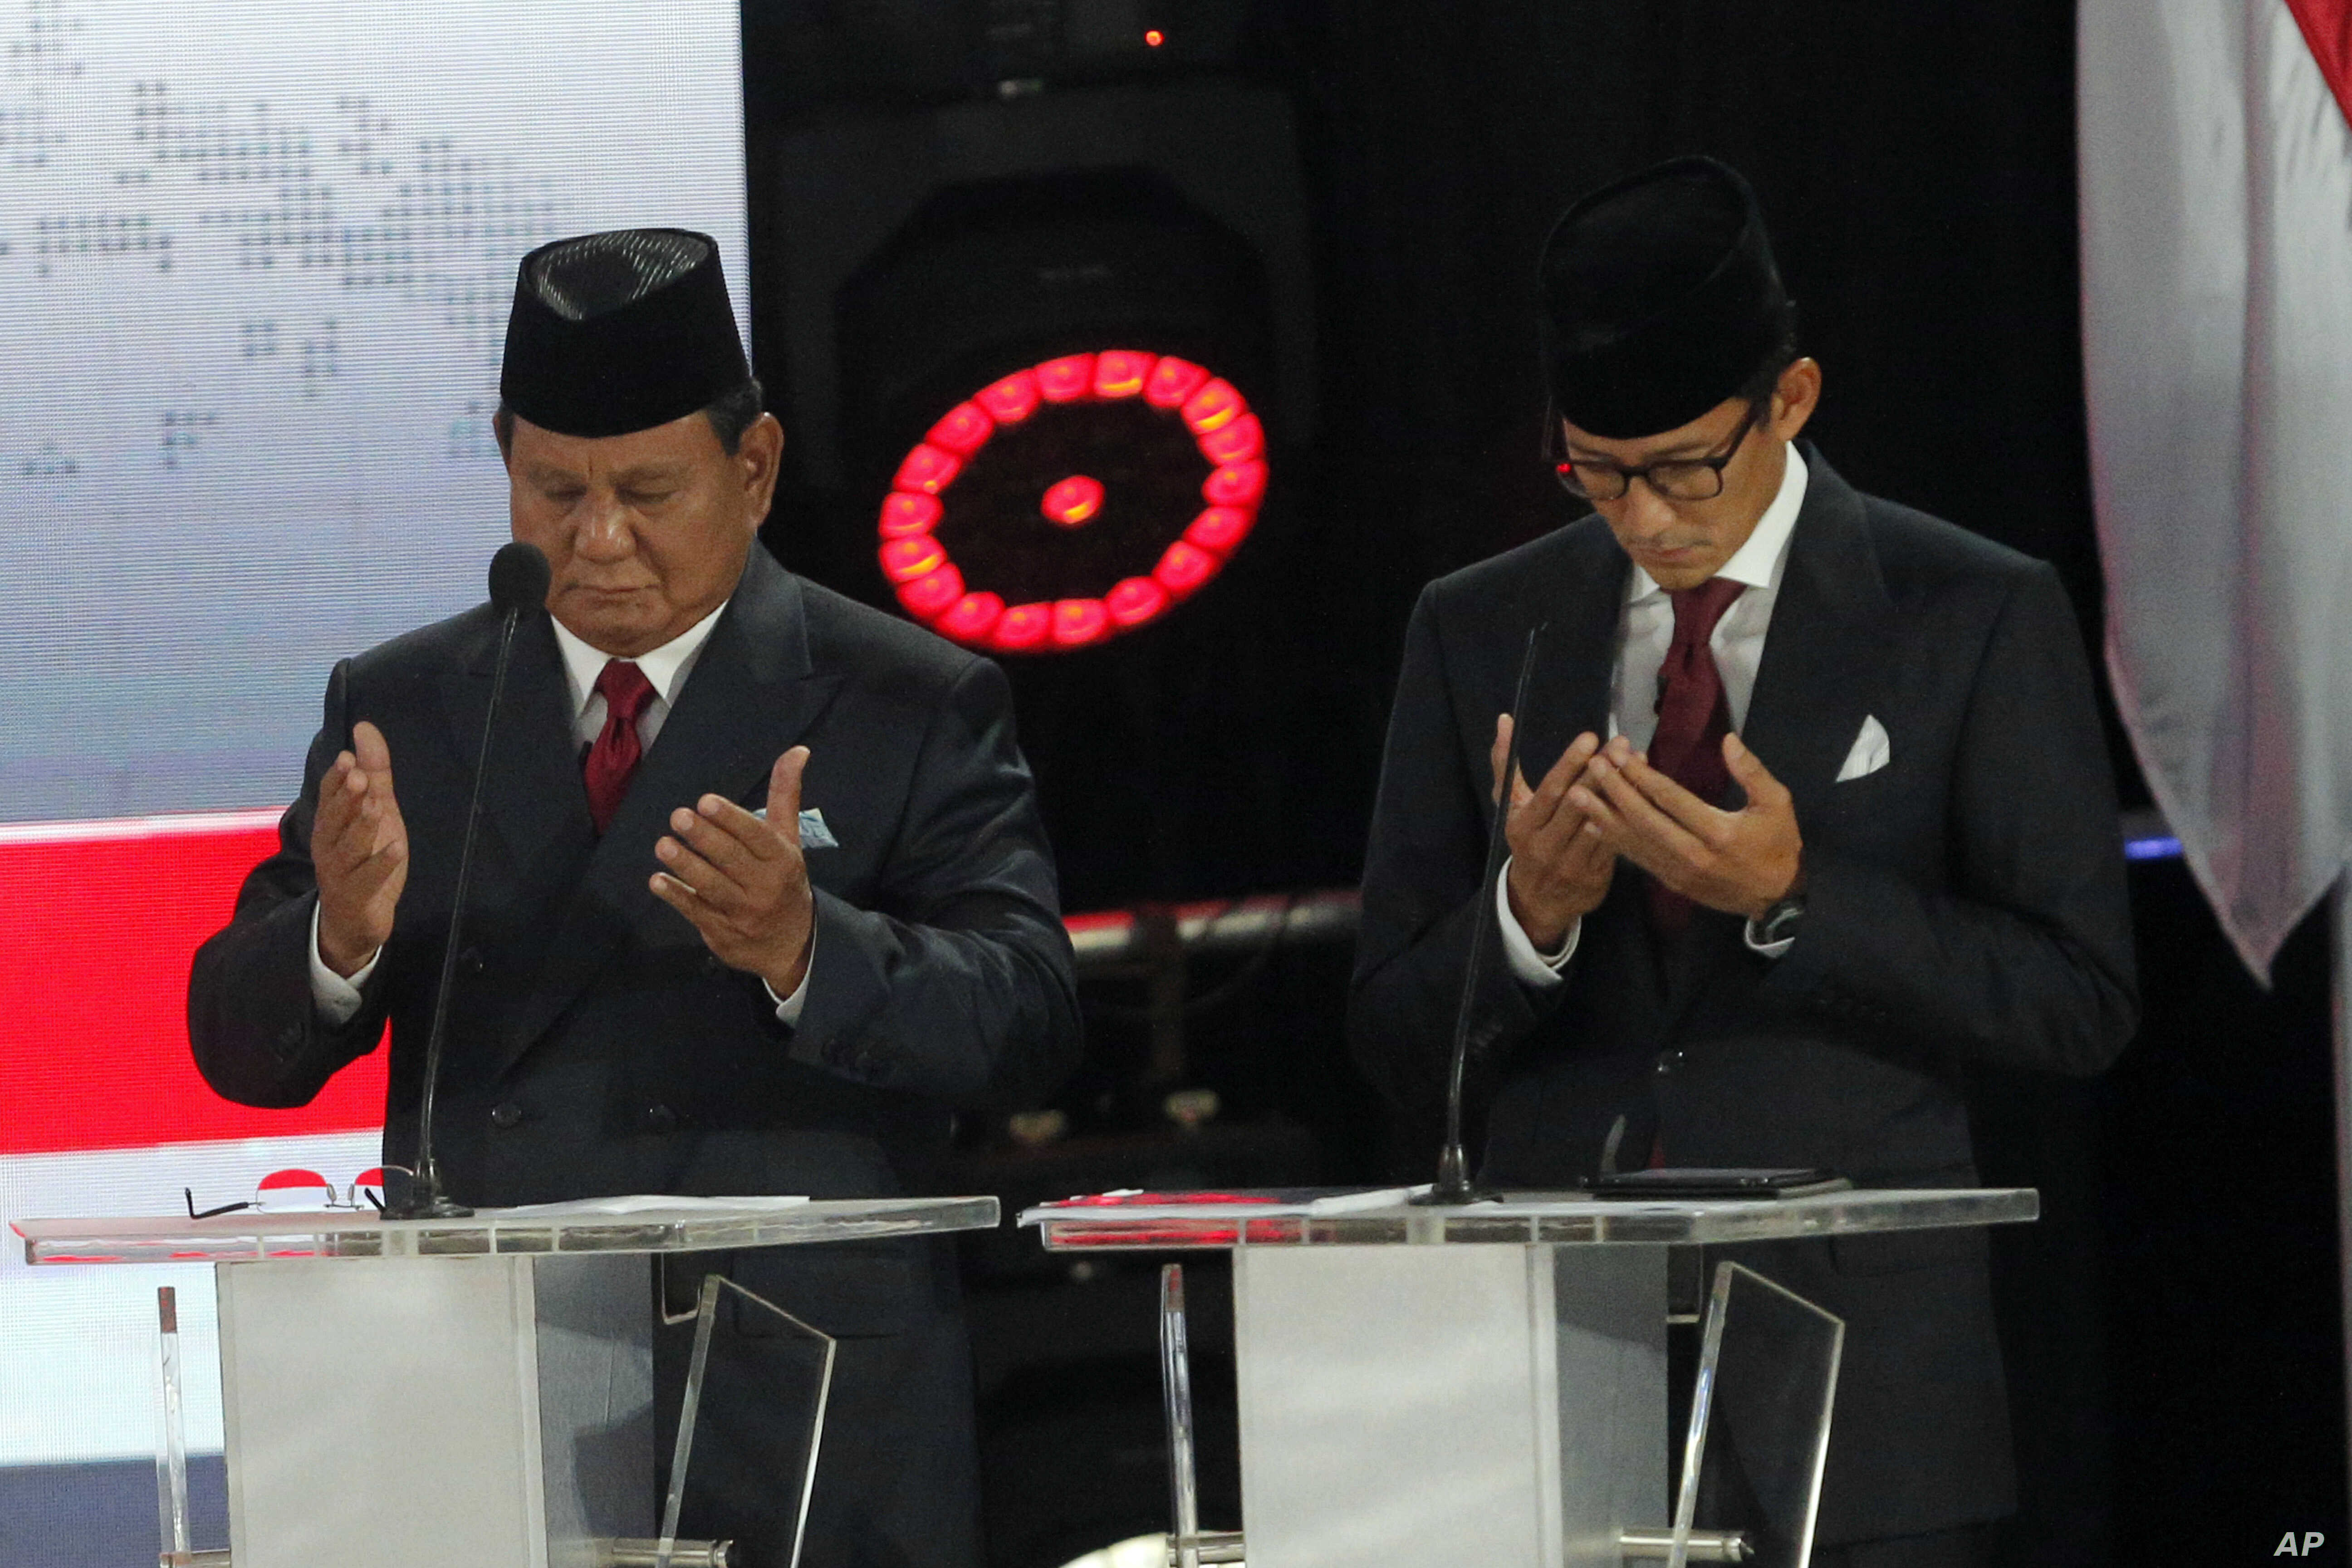 Indonesian presidential candidate Prabowo Subianto, left, with running mate Sandiaga Uno, prays prior to a televised presidential candidates debate in Jakarta, Indonesia, April 13, 2019.